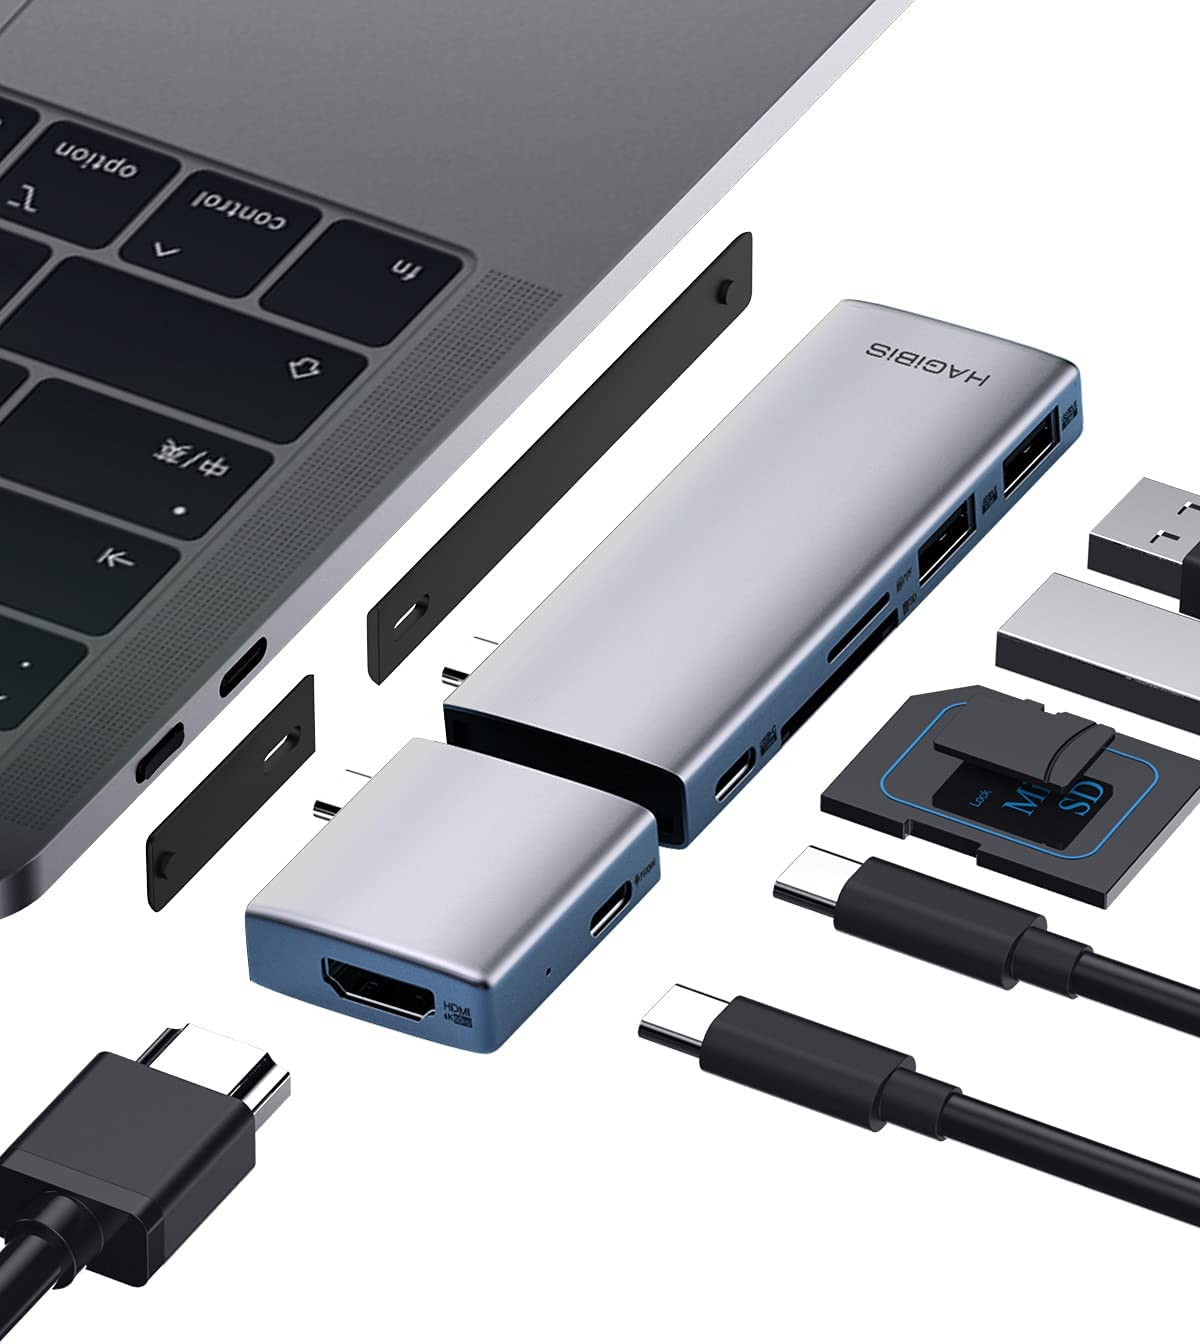 Hagibis USB C Hub Modular Magnetic USB Type-C Hub with 4K@60Hz HDMI, Separated Dual USB-C Adapter for MacBook Pro Air M1/2020/2019/2018 iPad Pro, SD/TF, USB 3.0, 100W Power Delivery (SD/Micro SD)